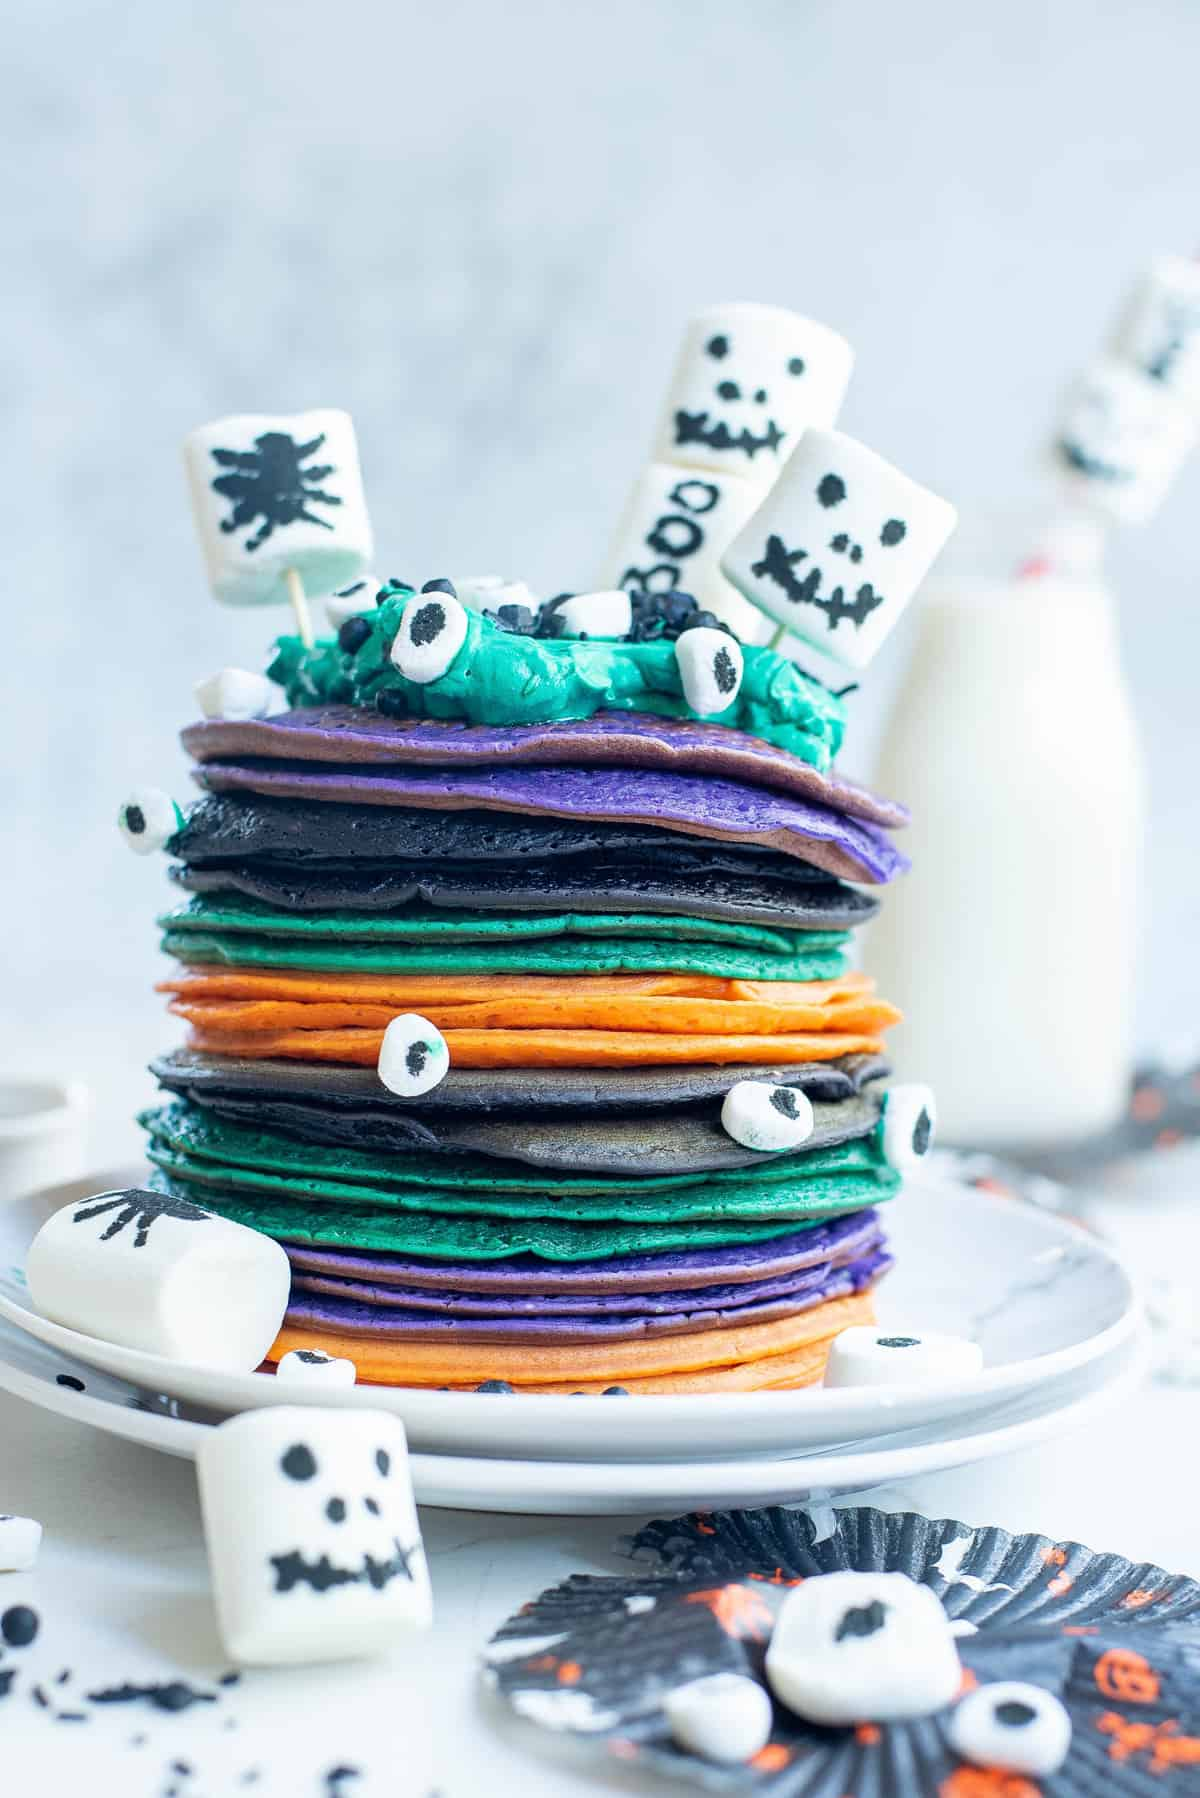 Green, orange, purple, and black pancakes in stack, decorated with marshmallows.